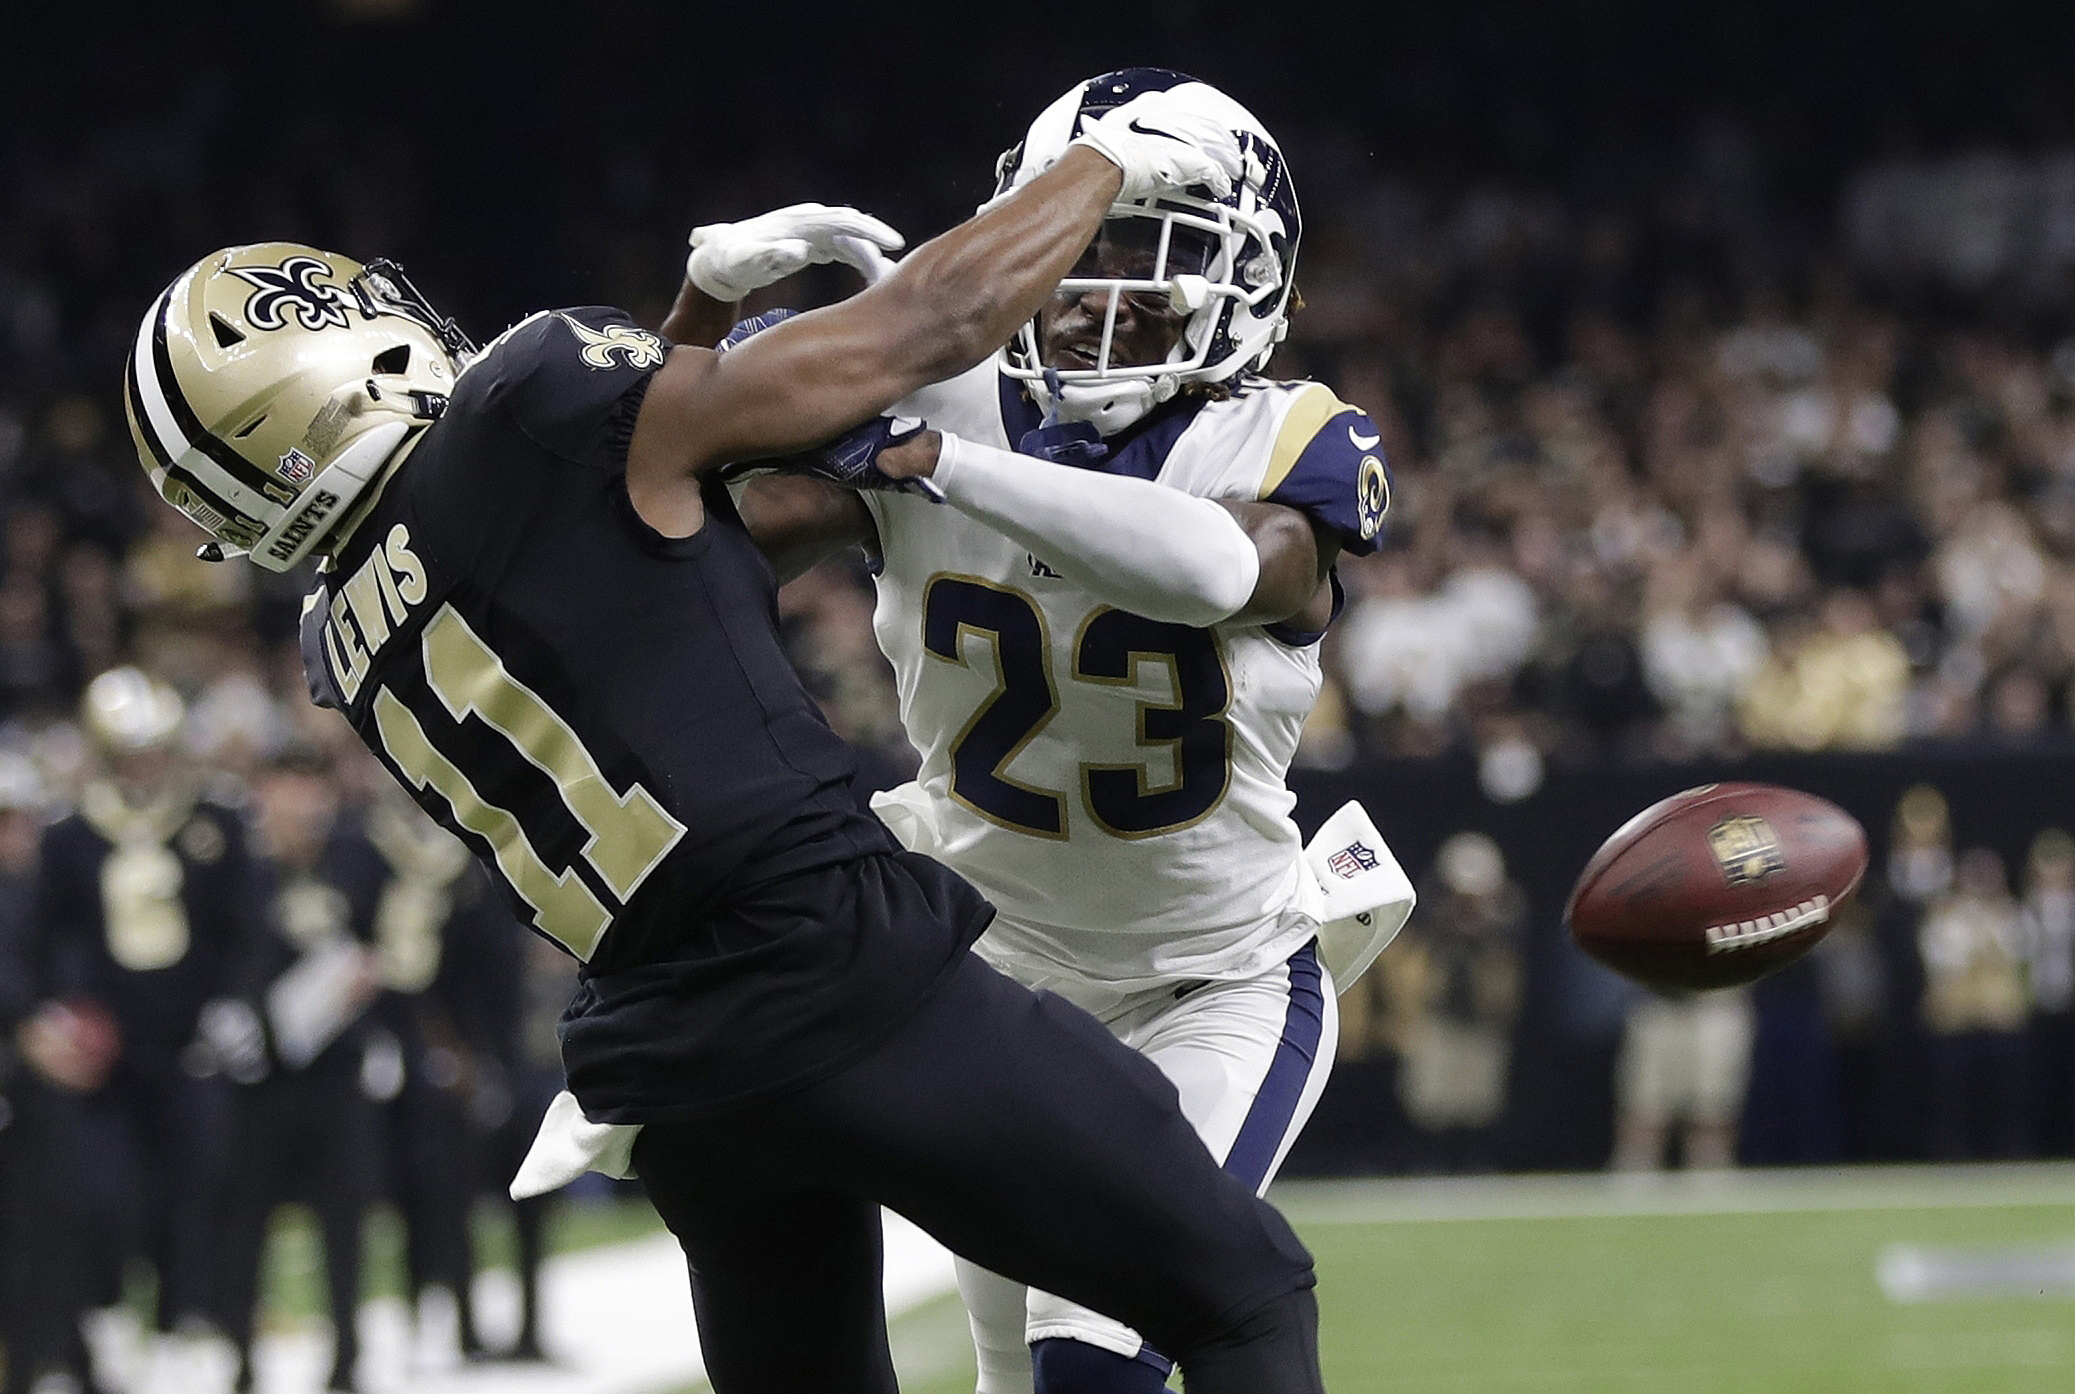 b9705999474 20, 2019, file photo, Los Angeles Rams' Nickell Robey-Coleman breaks up a  pass intended for New Orleans Saints' Tommylee Lewis during the second half  of the ...